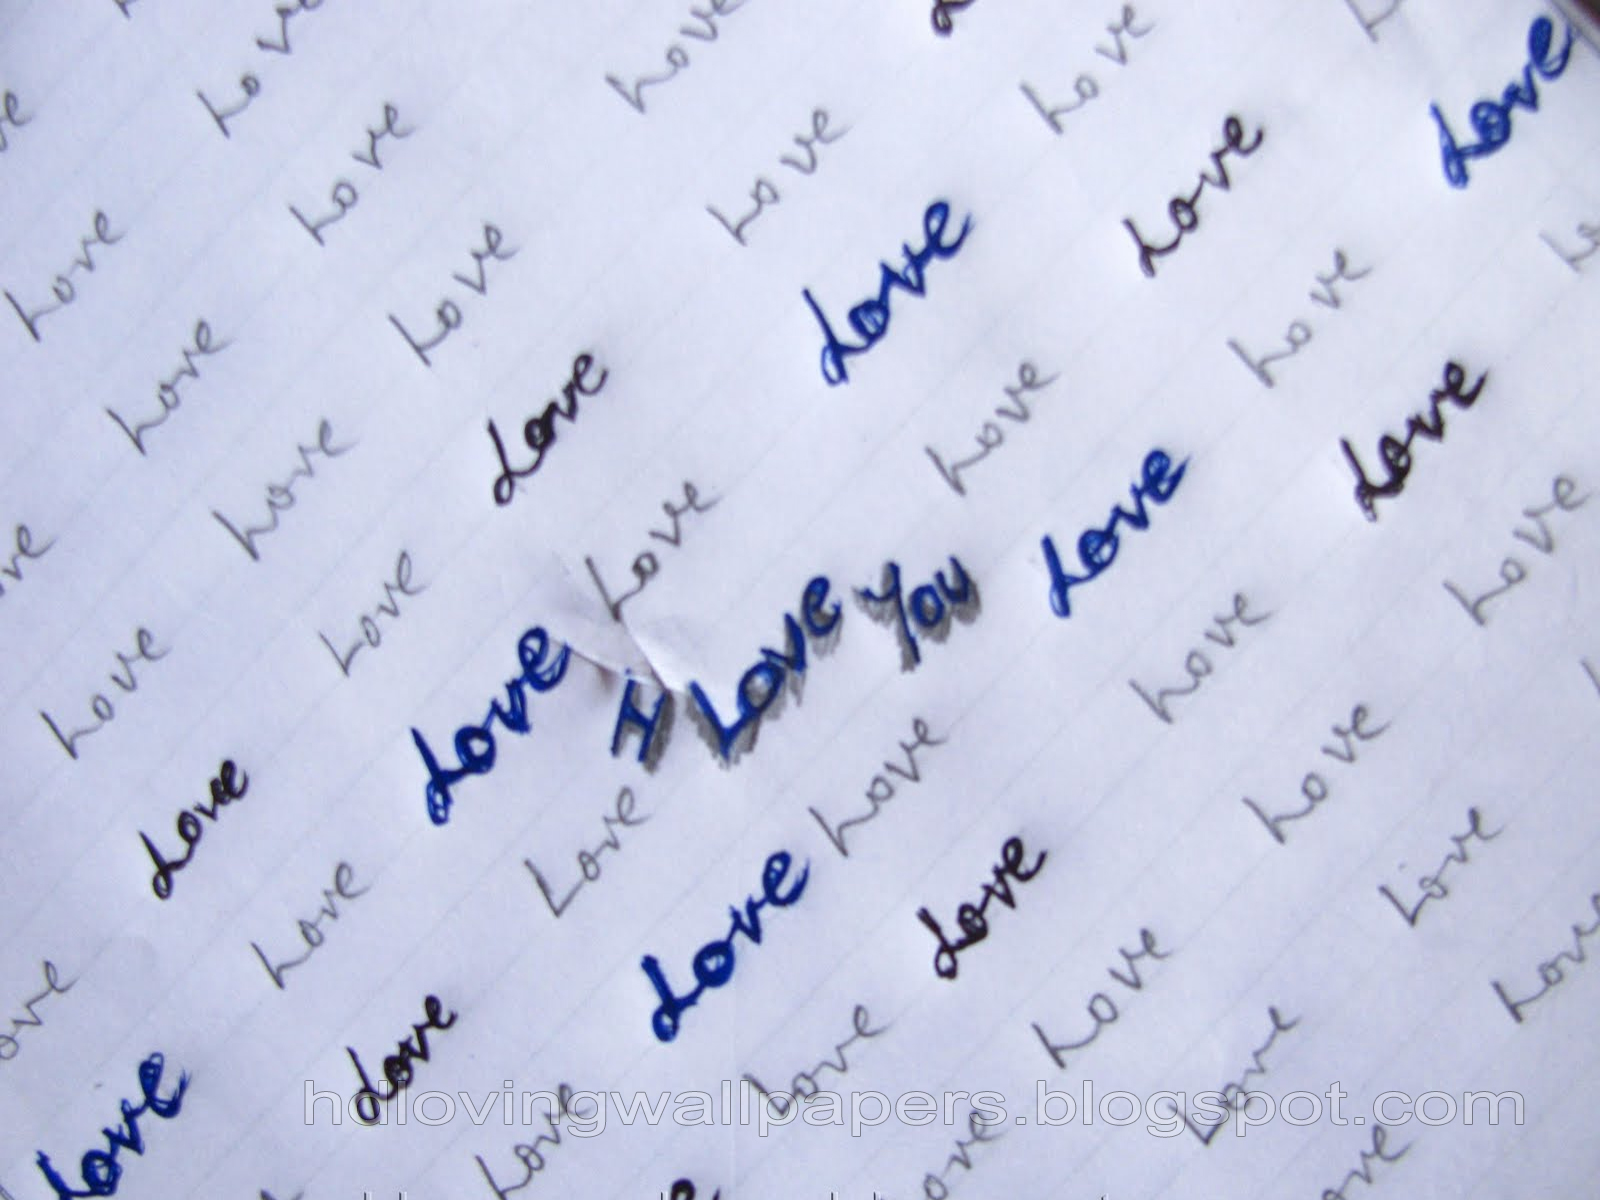 Love wallpaper sad quote love quotes wallpapers love wallpaper sad quote voltagebd Gallery